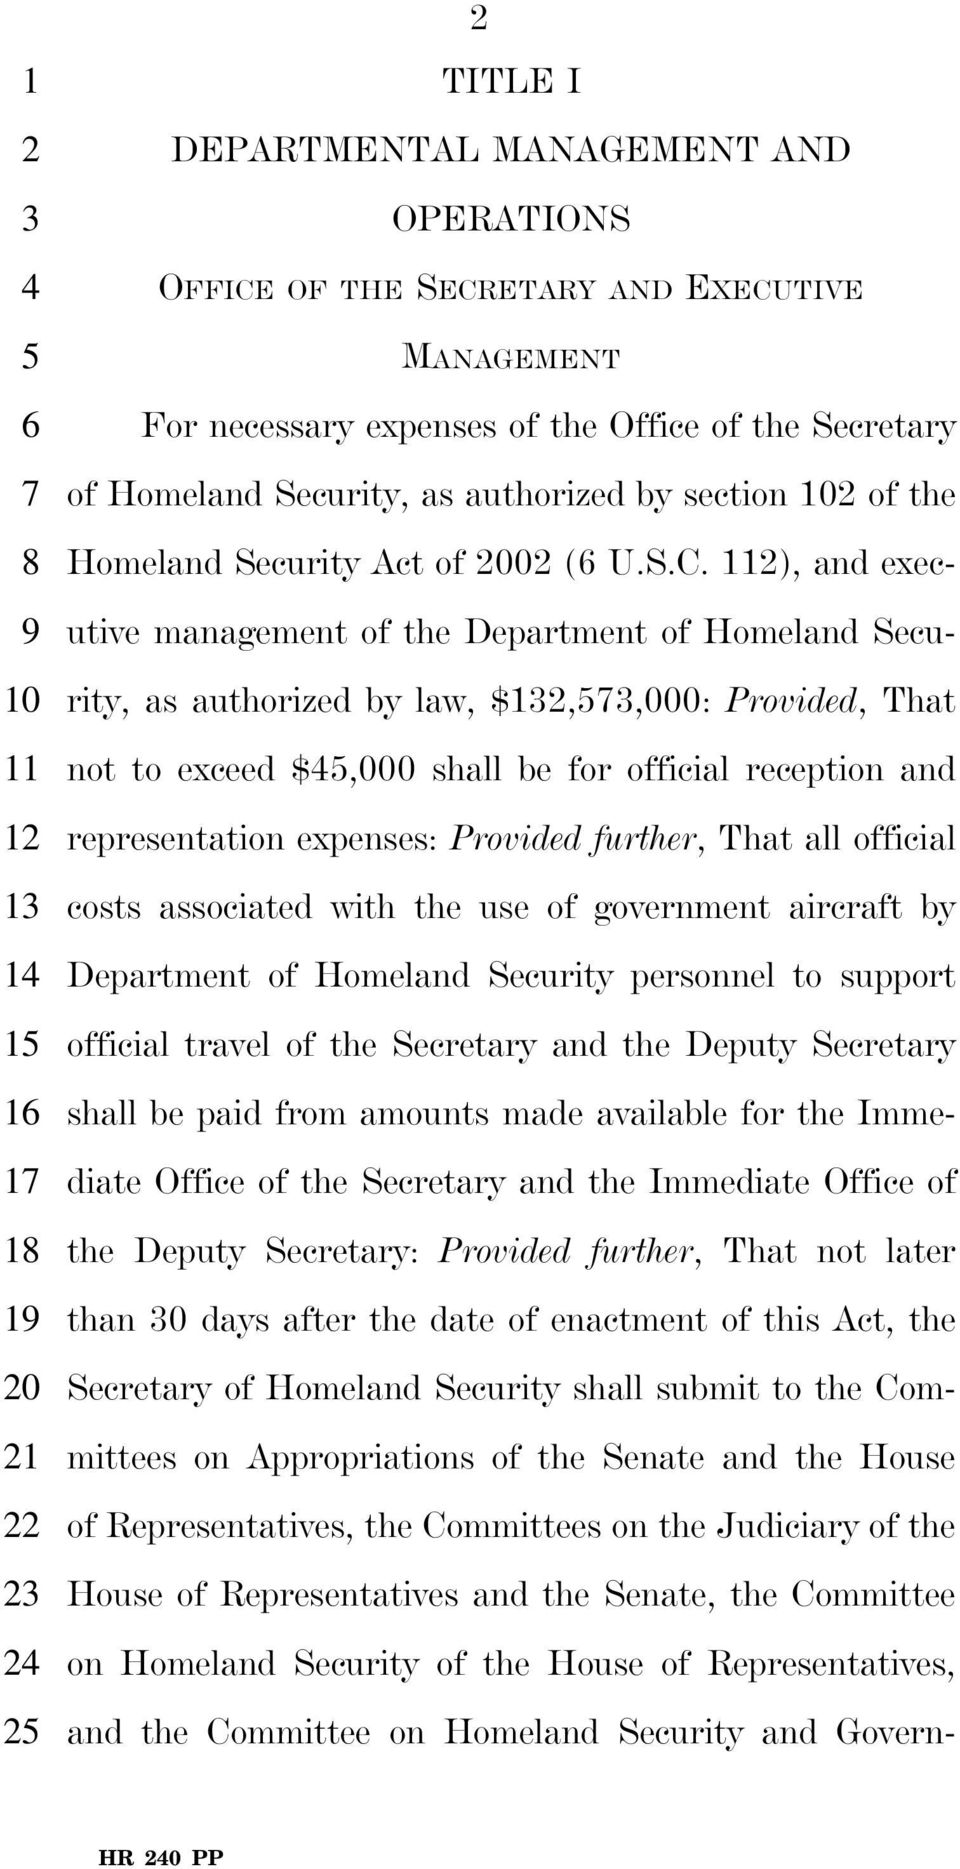 112), and executive management of the Department of Homeland Security, as authorized by law, $132,573,000: Provided, That not to exceed $45,000 shall be for official reception and representation